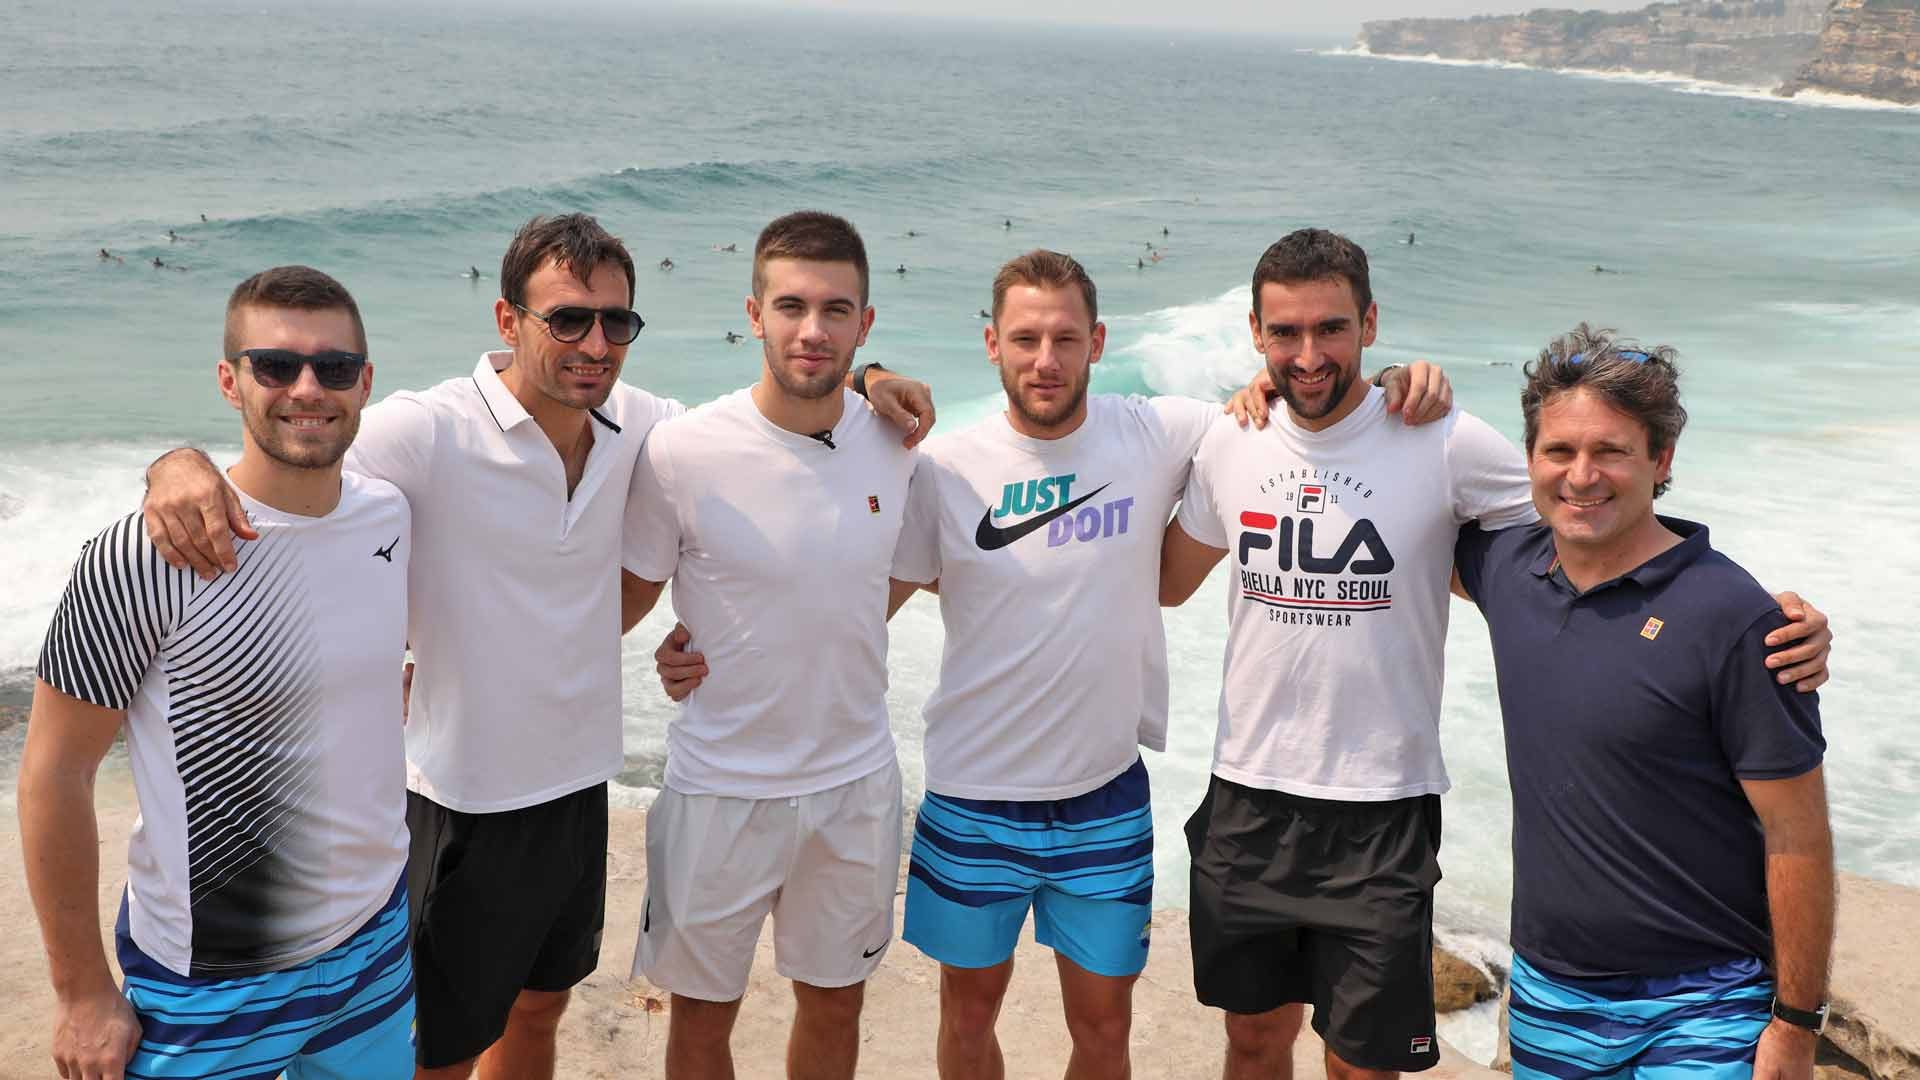 Team Croatia visits Tamarama Beach in Sydney ahead of the <a href='https://www.atptour.com/en/tournaments/atp-cup/8888/overview'>ATP Cup</a>.